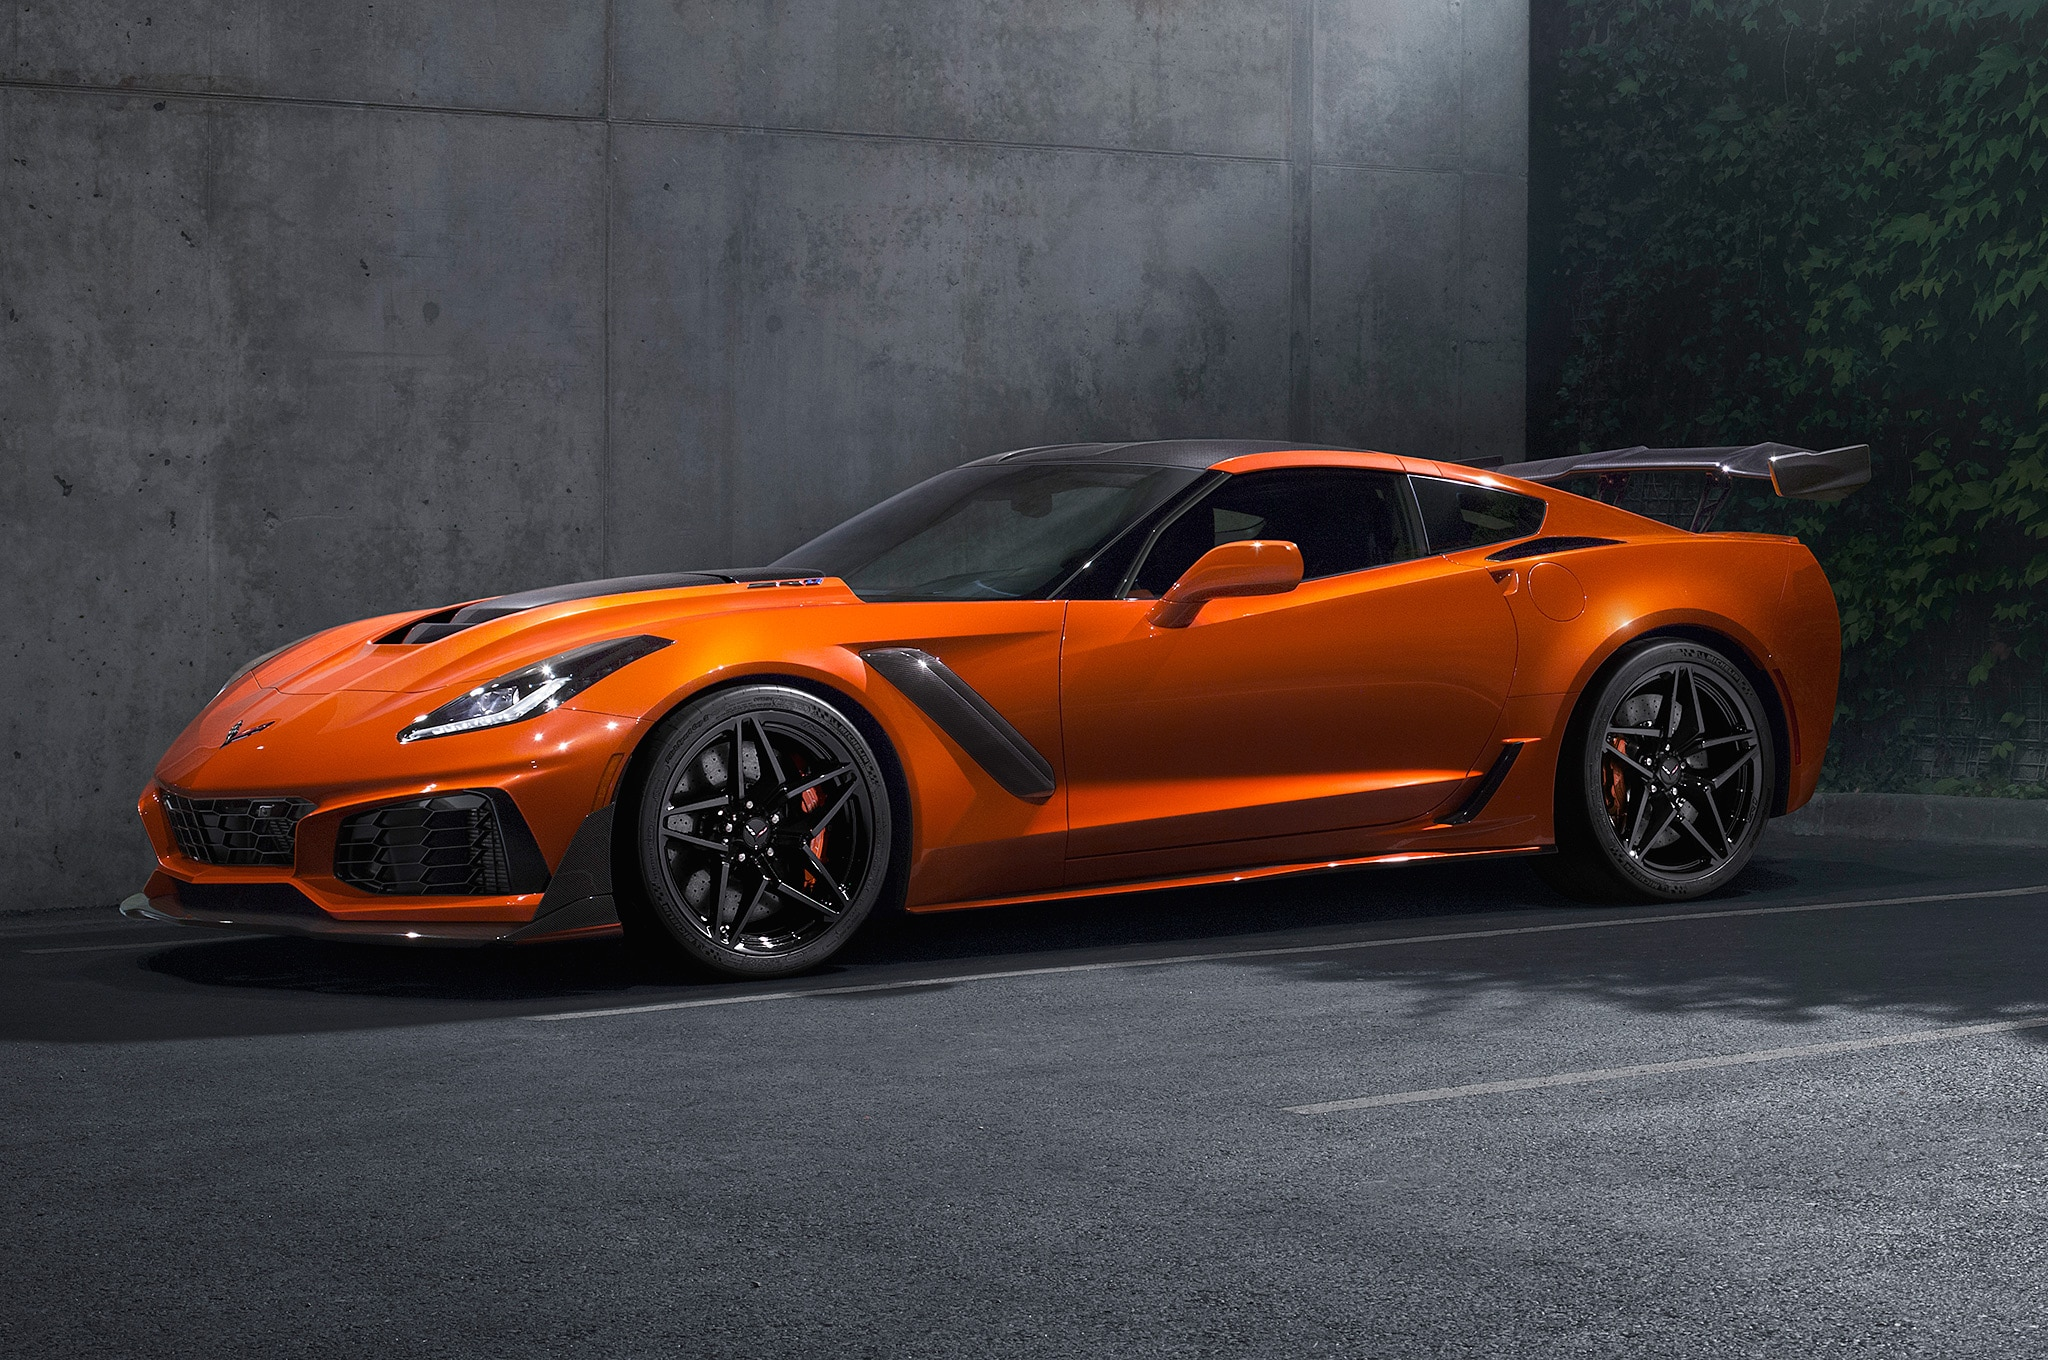 Chevrolet Corvette ZR1 returns for 2019 with 755 HP